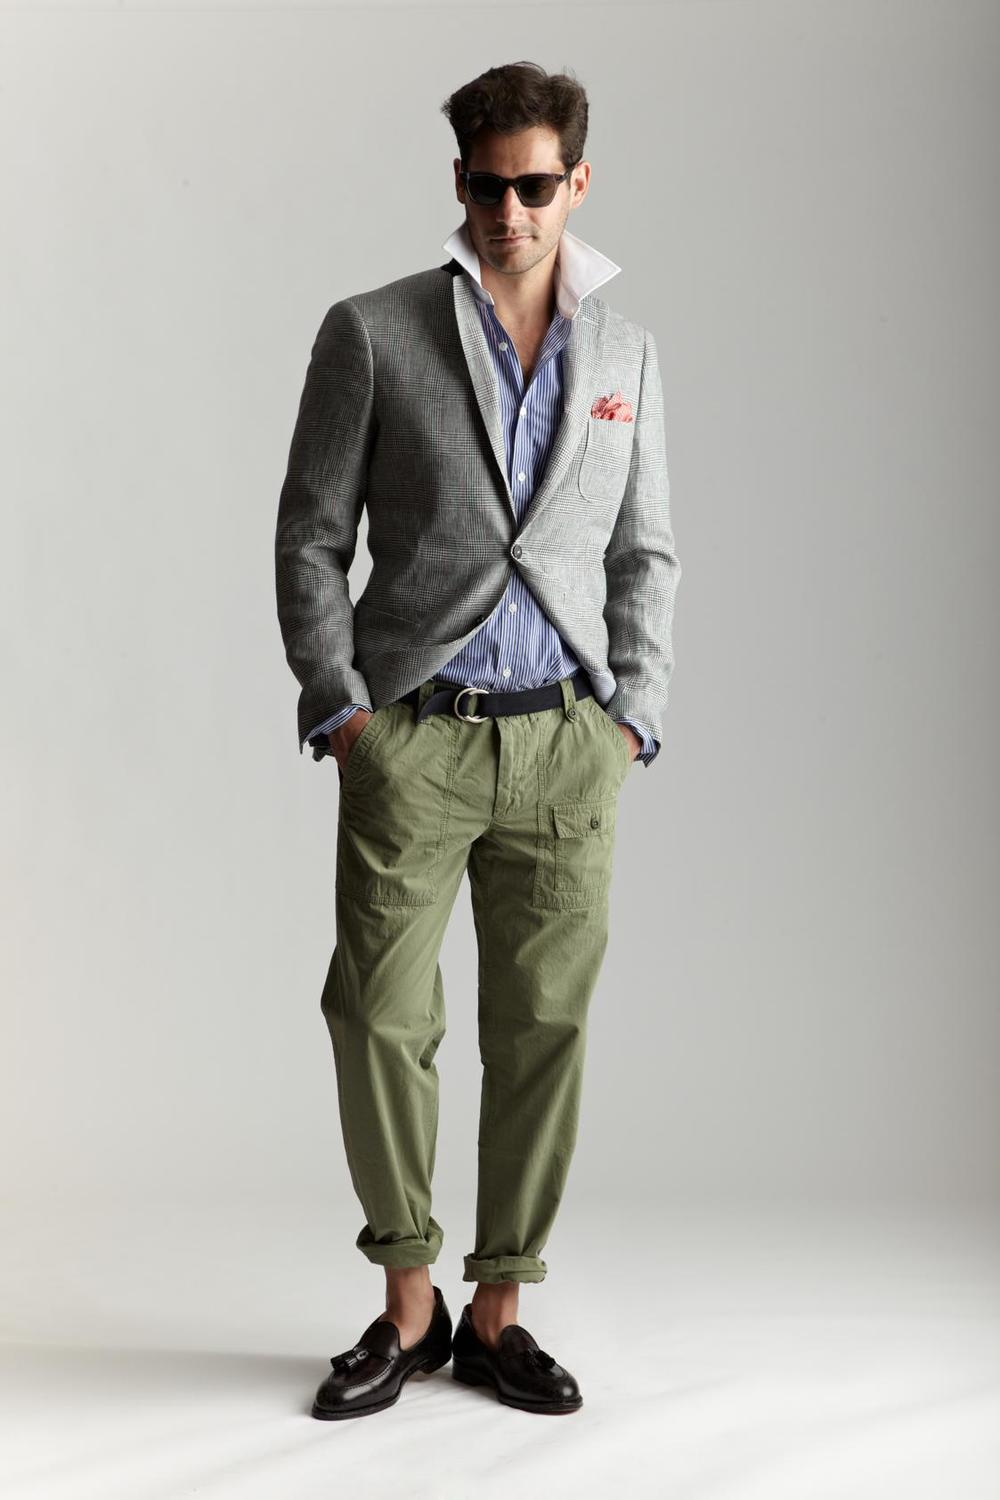 Michael-Bastian-x-Barneys-SS12-grey-jacket-cargo-green-pants.jpg